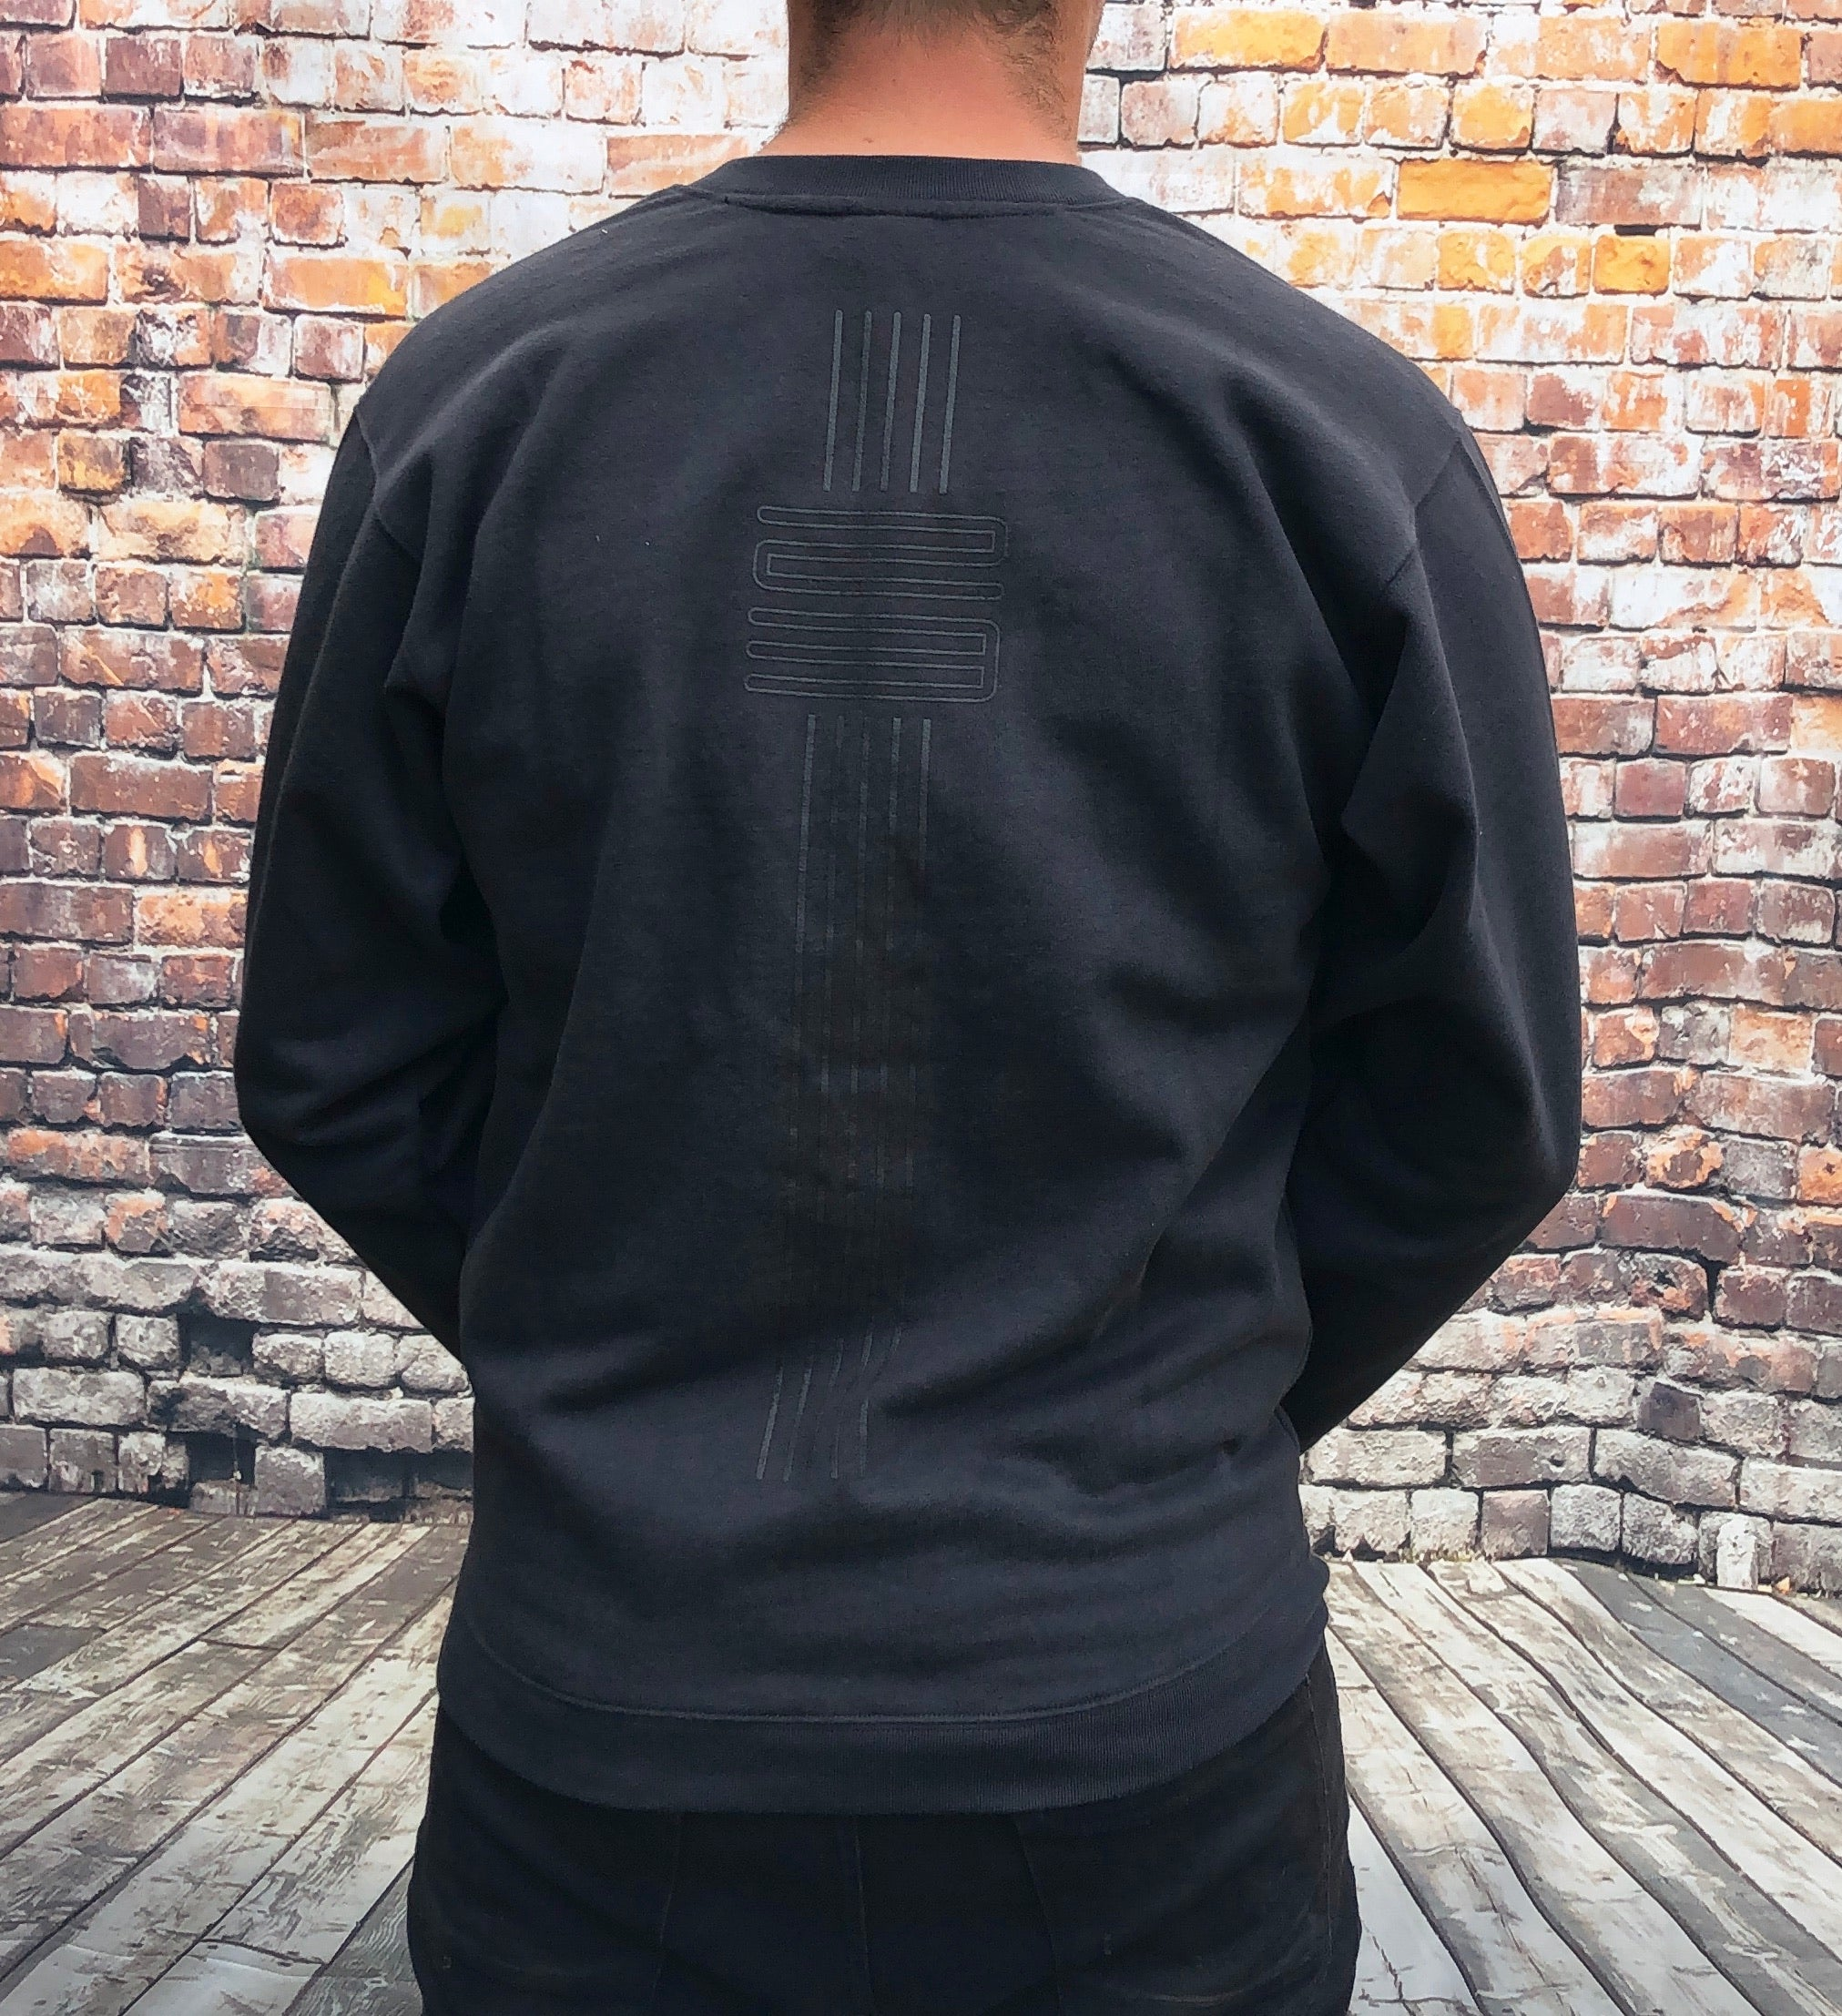 Black, thick, V-neck Nike jumper, with large, printed Nike basketball logo on the chest and trims down the back